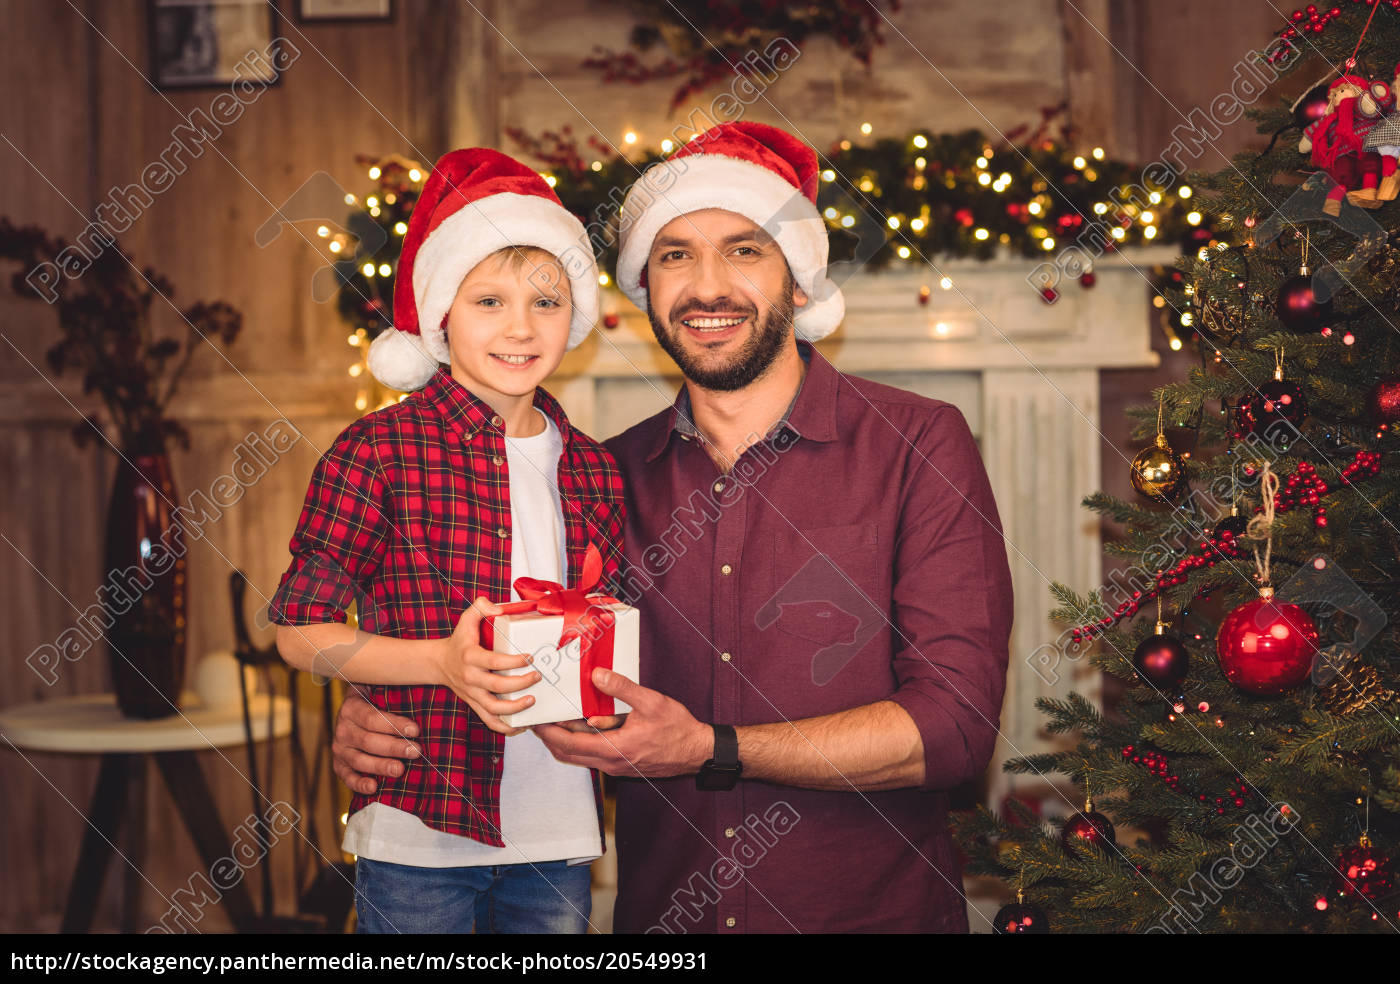 little, son, with, happy, father - 20549931